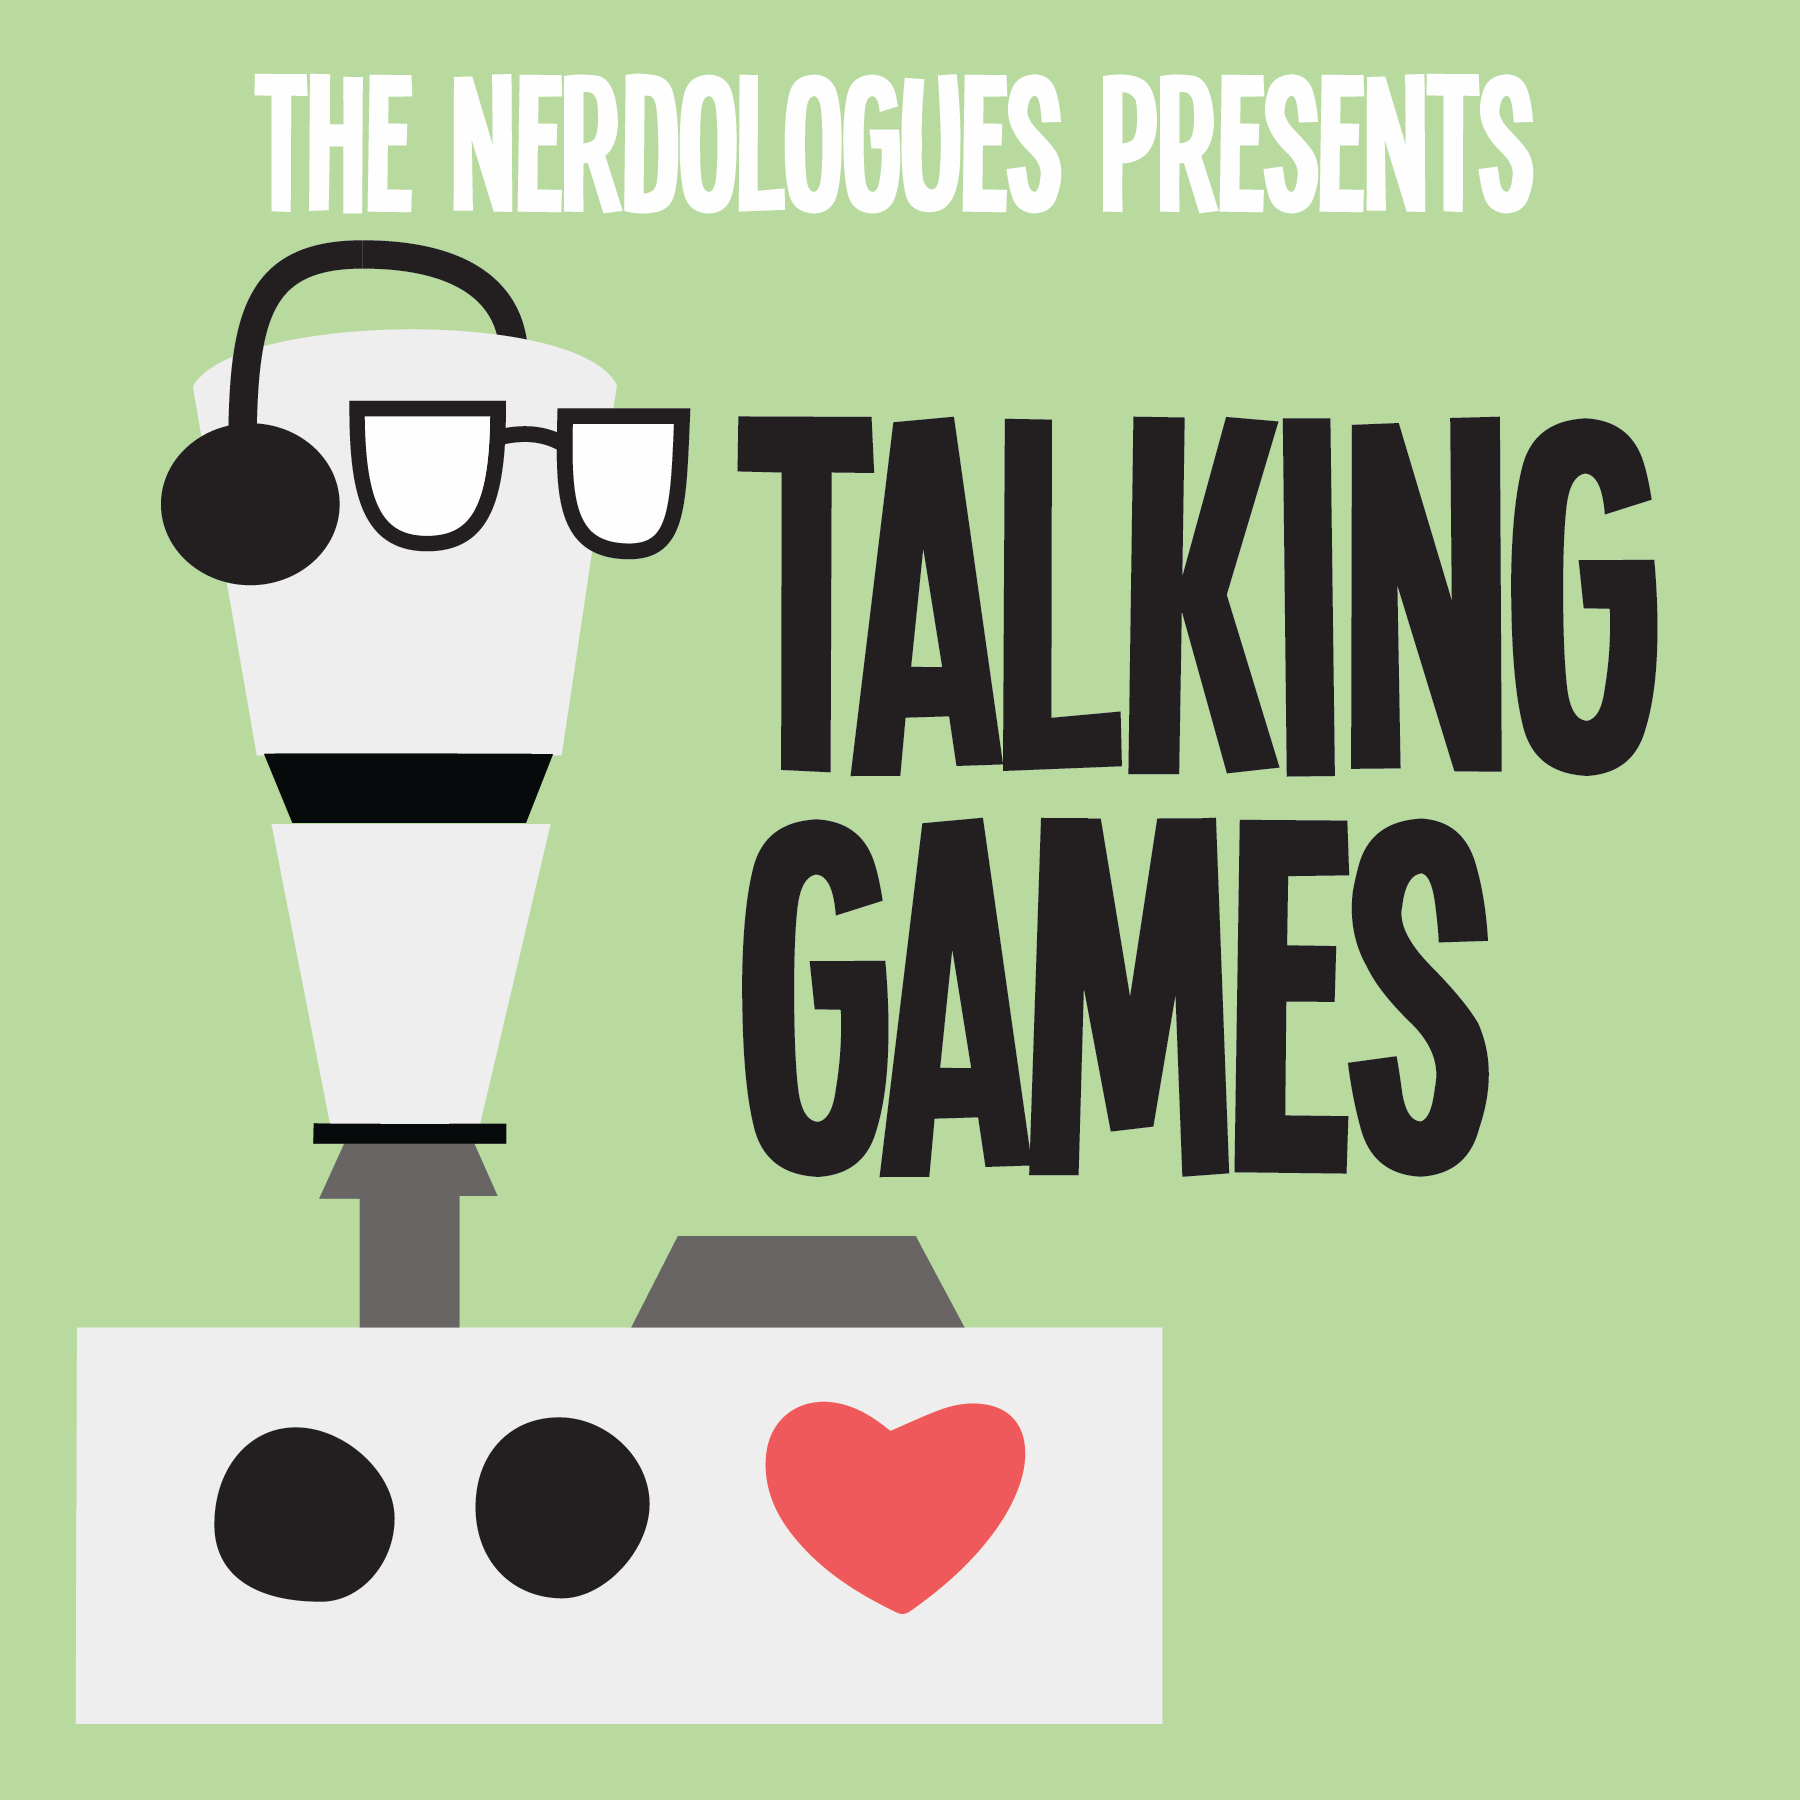 The Nerdologues Presents: Talking Games